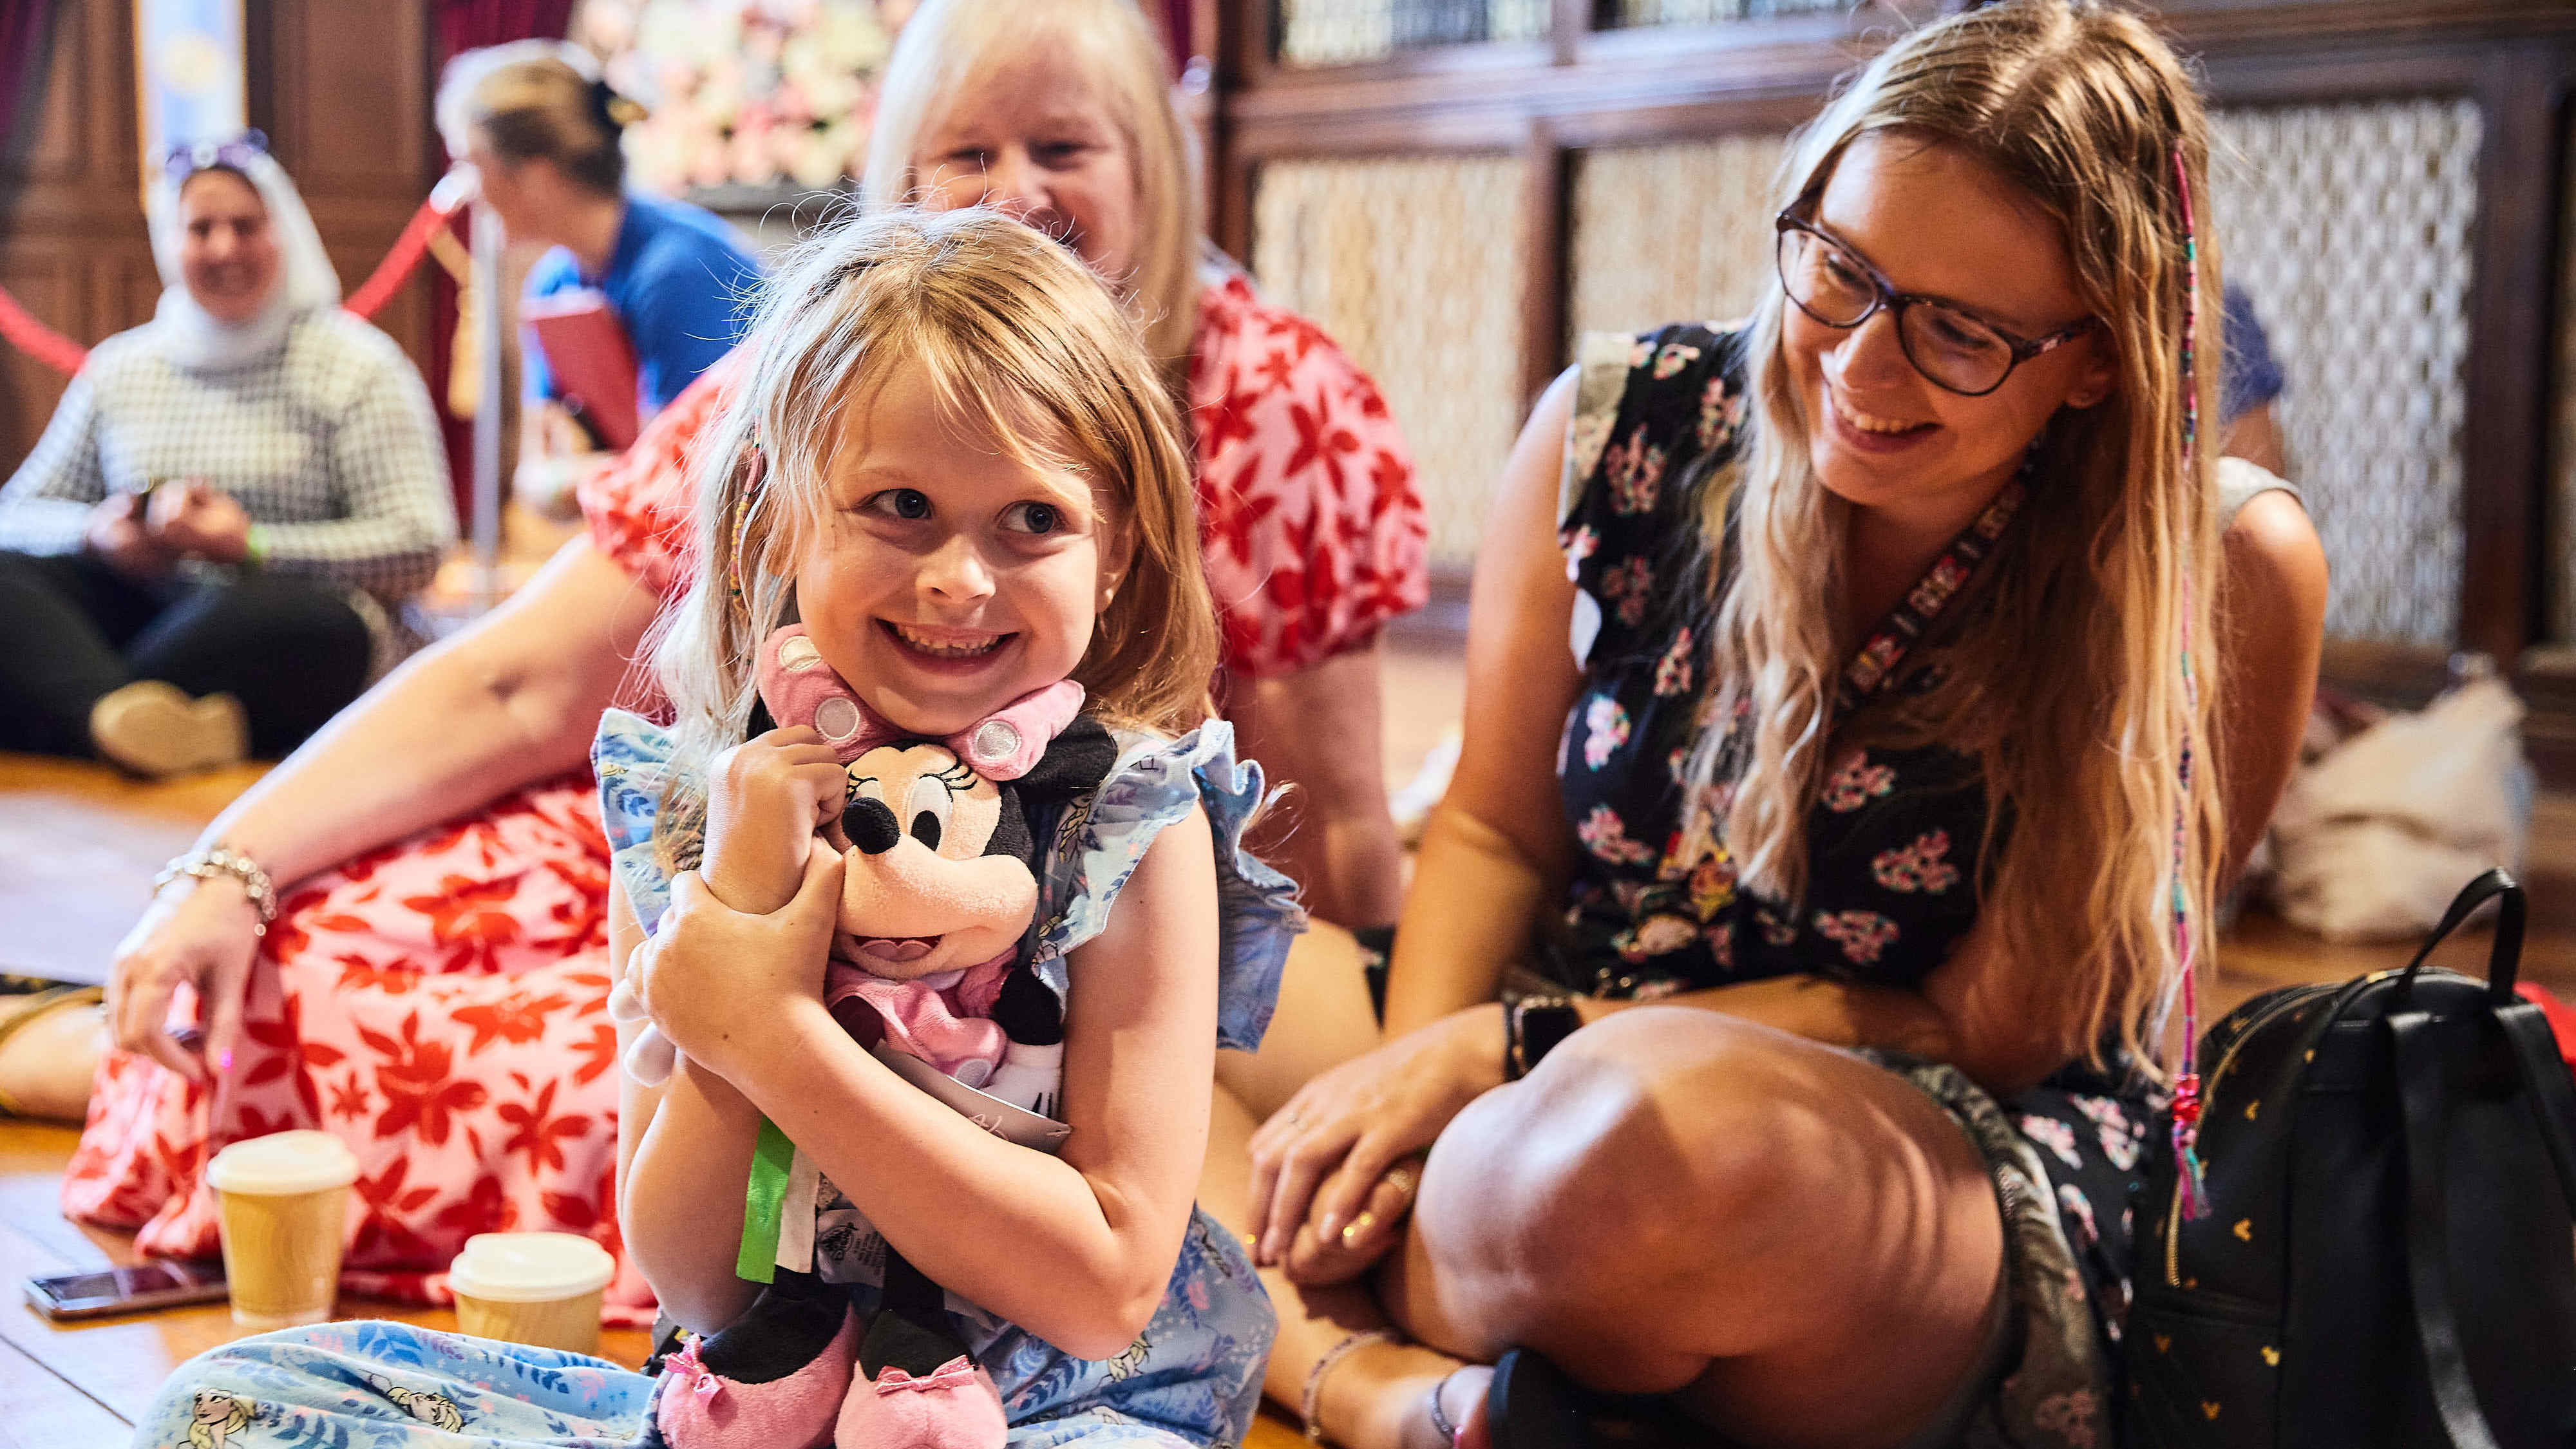 Disney and Make-A-Wish Create First of its Kind Disney Wish Experience For Wish Children in the UK